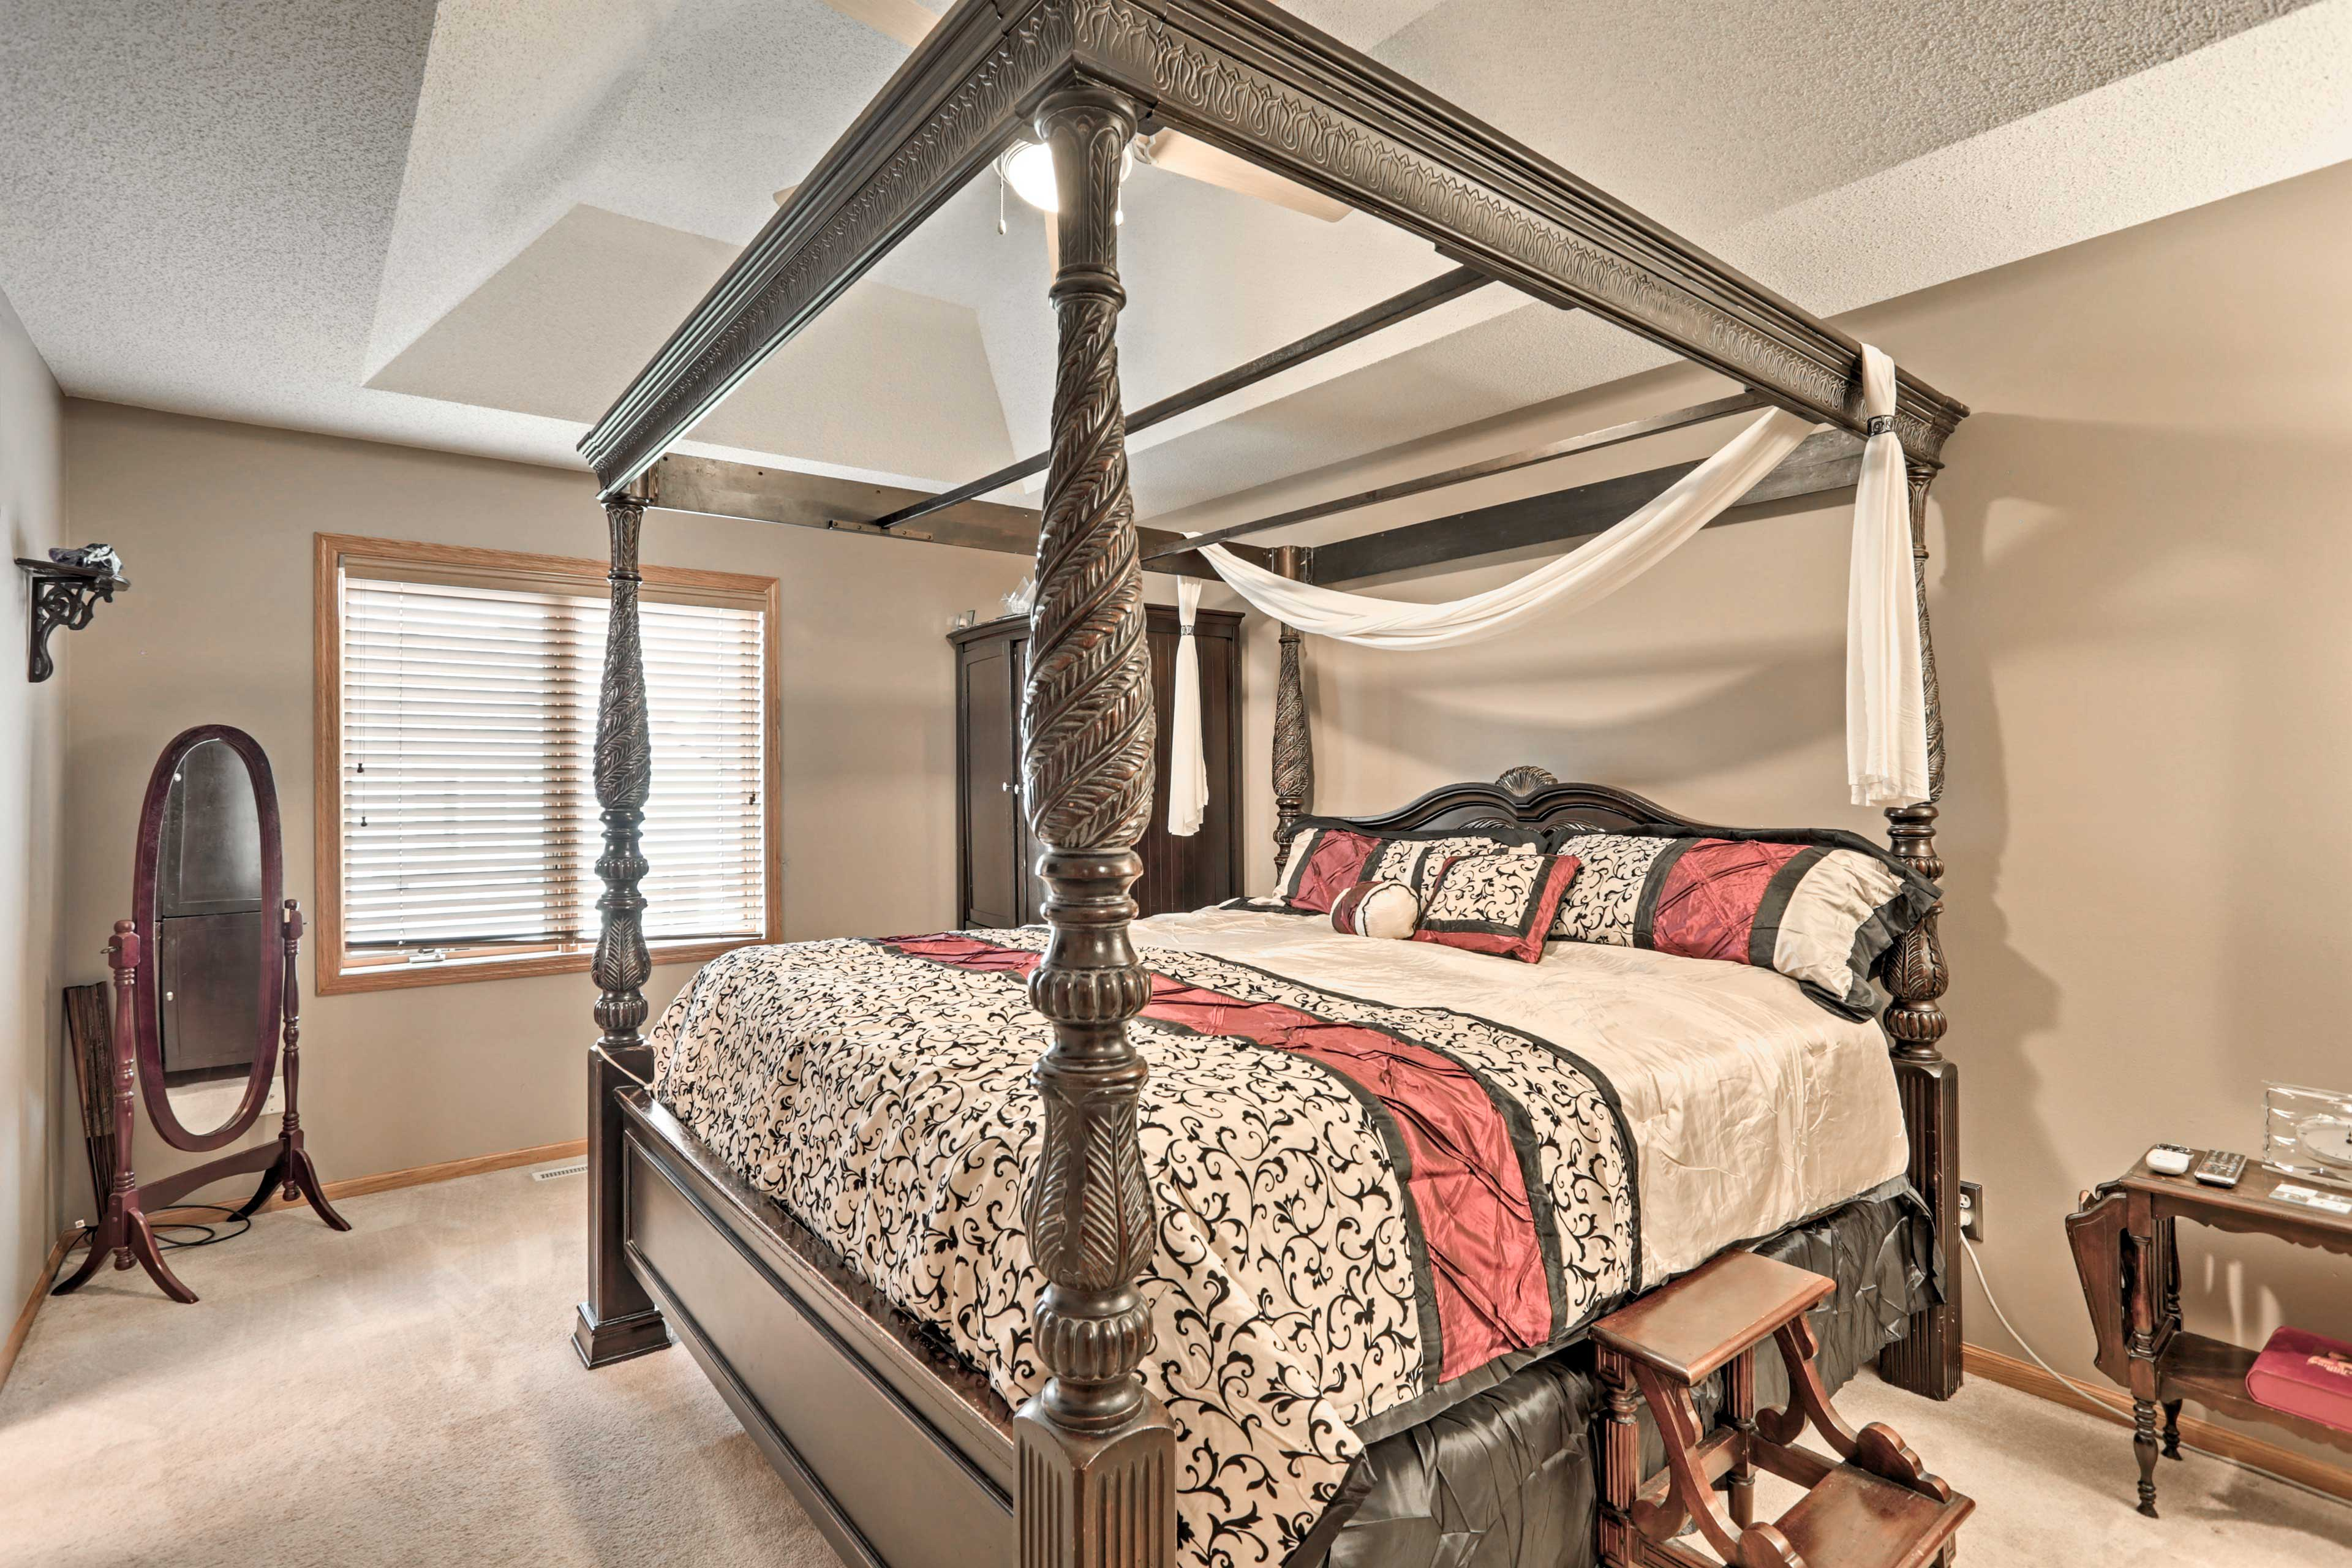 A 4-poster king bed is found in the master bedroom.